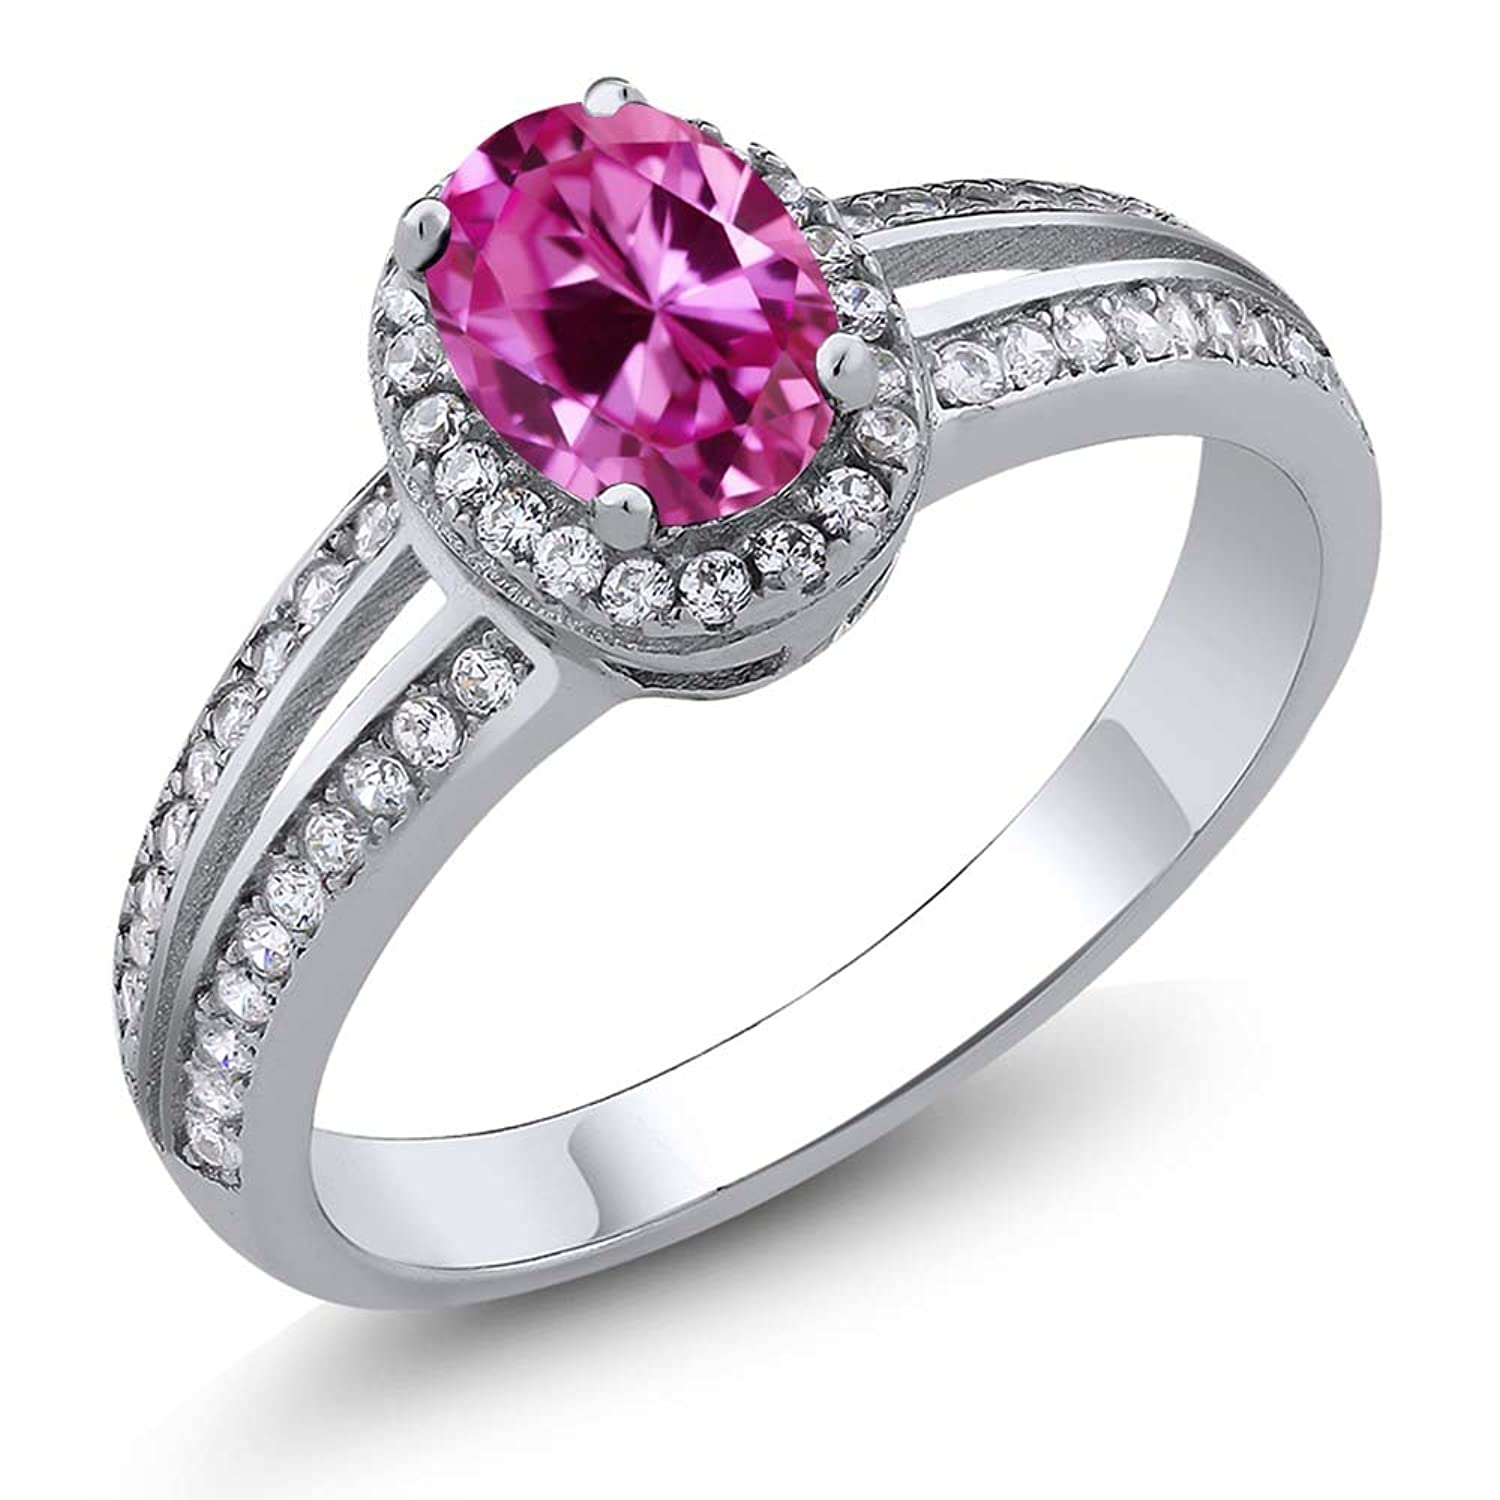 1.10 Ct Oval Pink Created Sapphire 925 Sterling Silver Ring